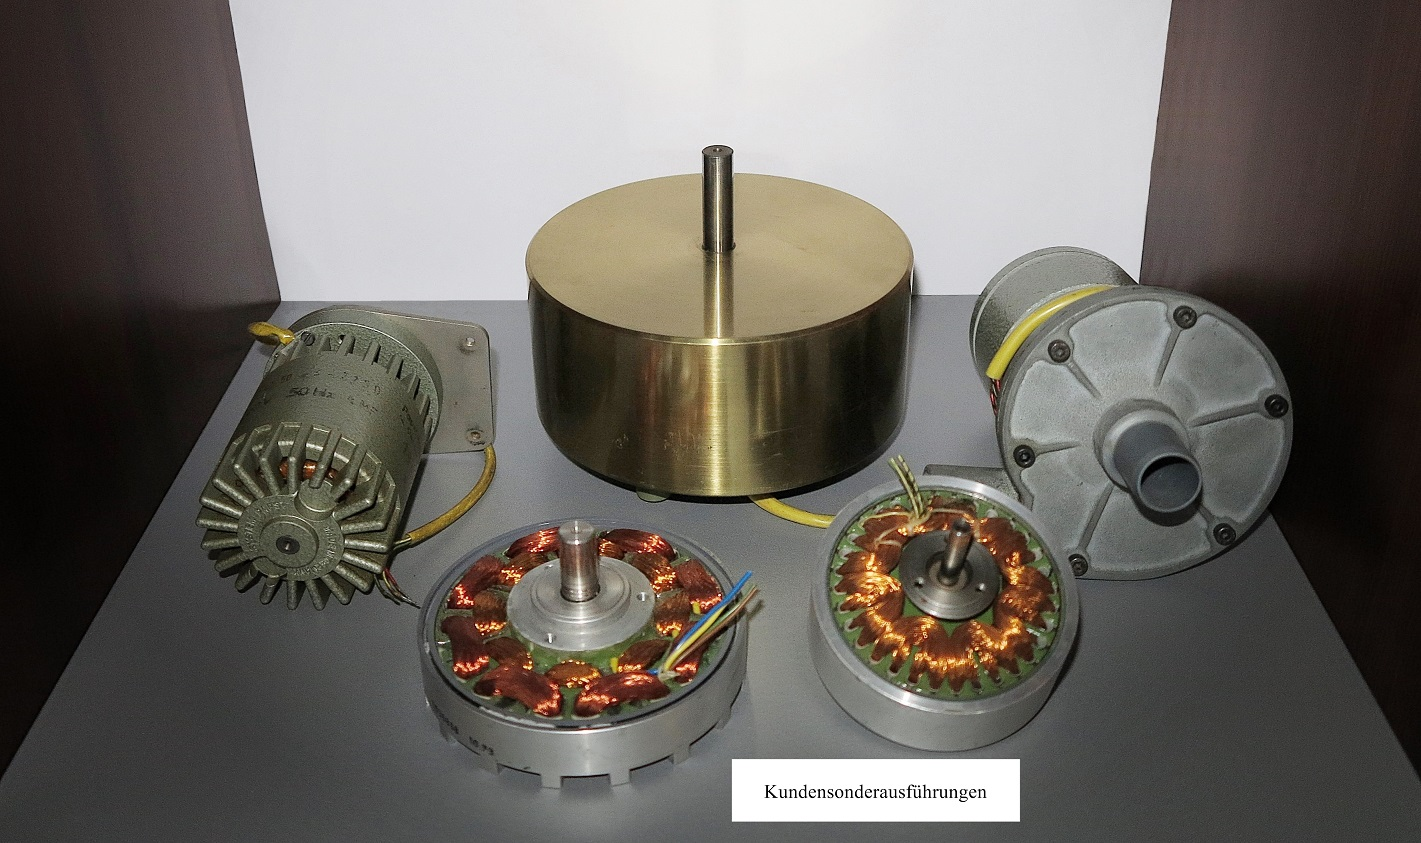 Erodynamic development stages for axial and radial fans